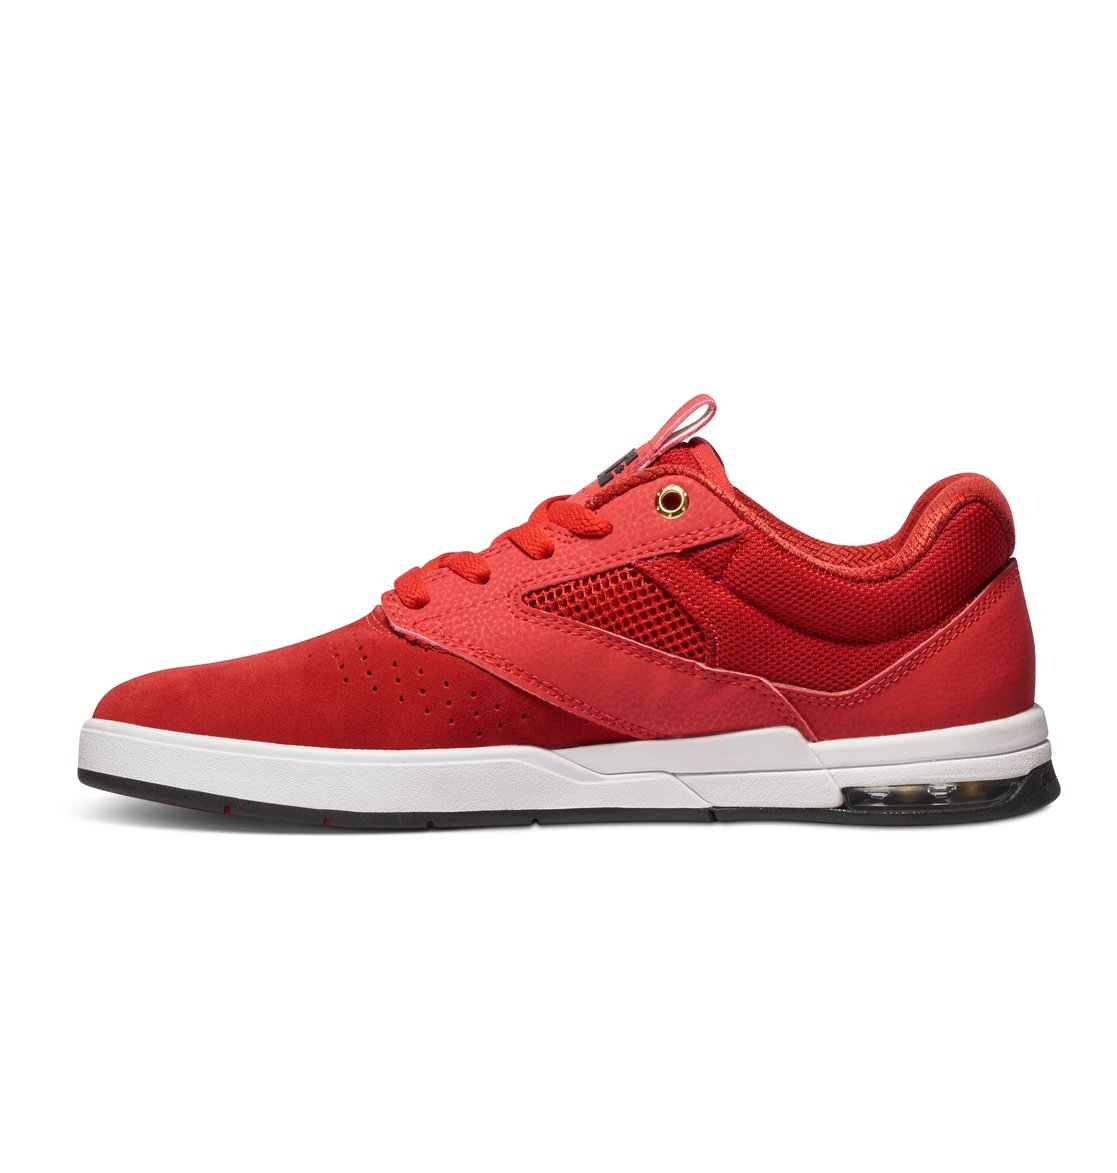 Red color code wolf online - 2 Men S Wolf S Shoes Red Adys100151 Dc Shoes